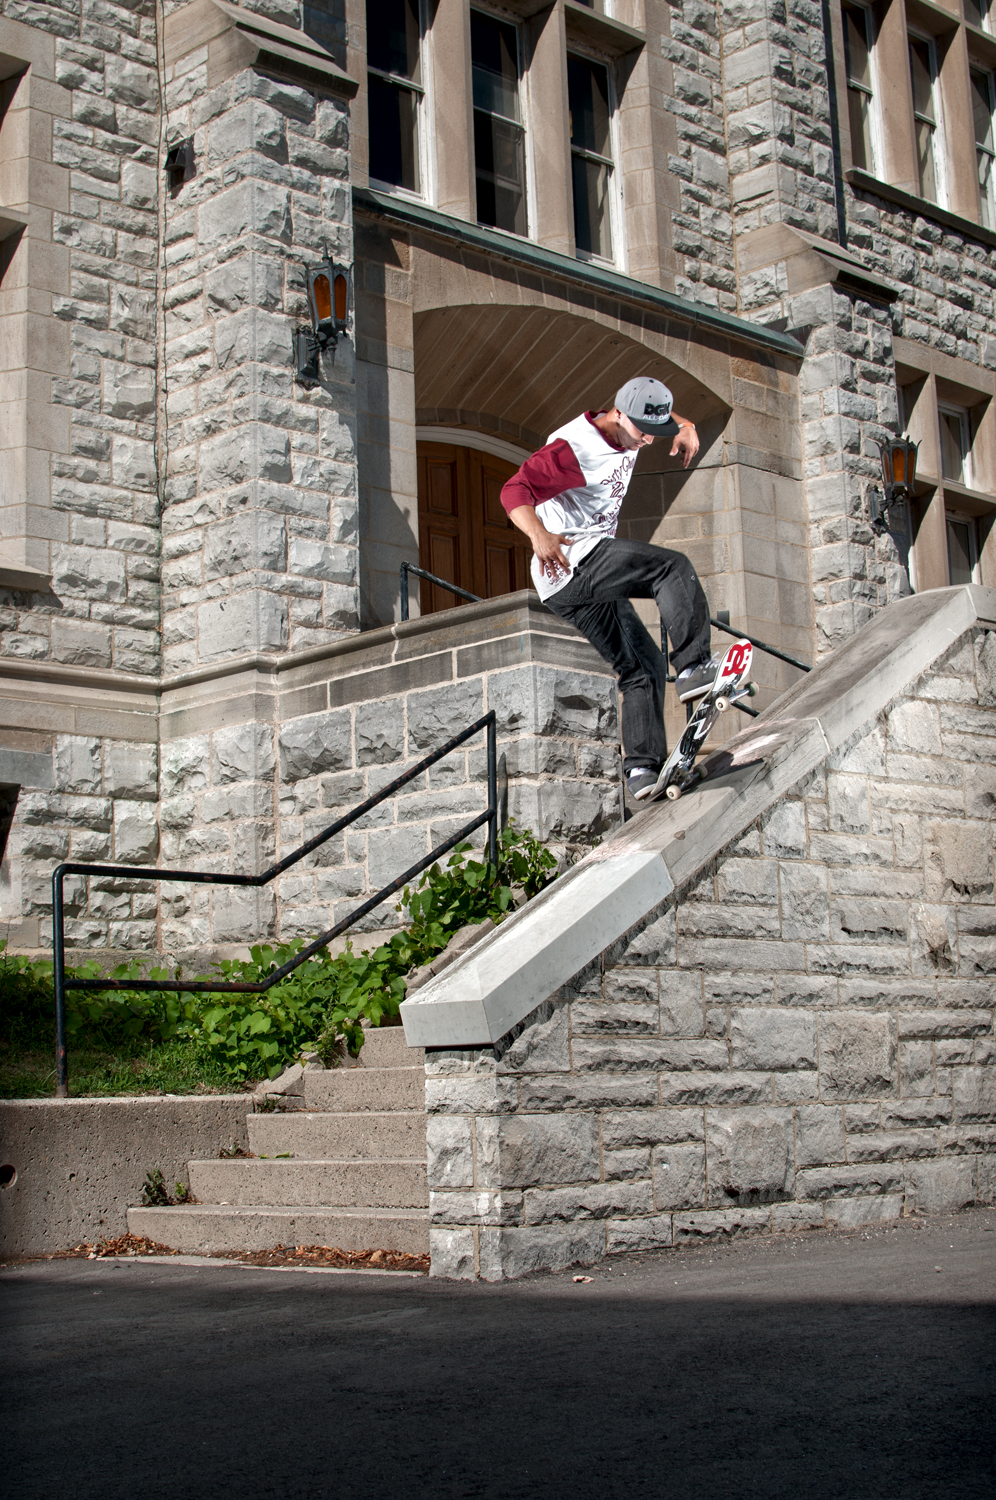 Mitch Barrette, Frontside Bluntslide, Kingston, ON 2012